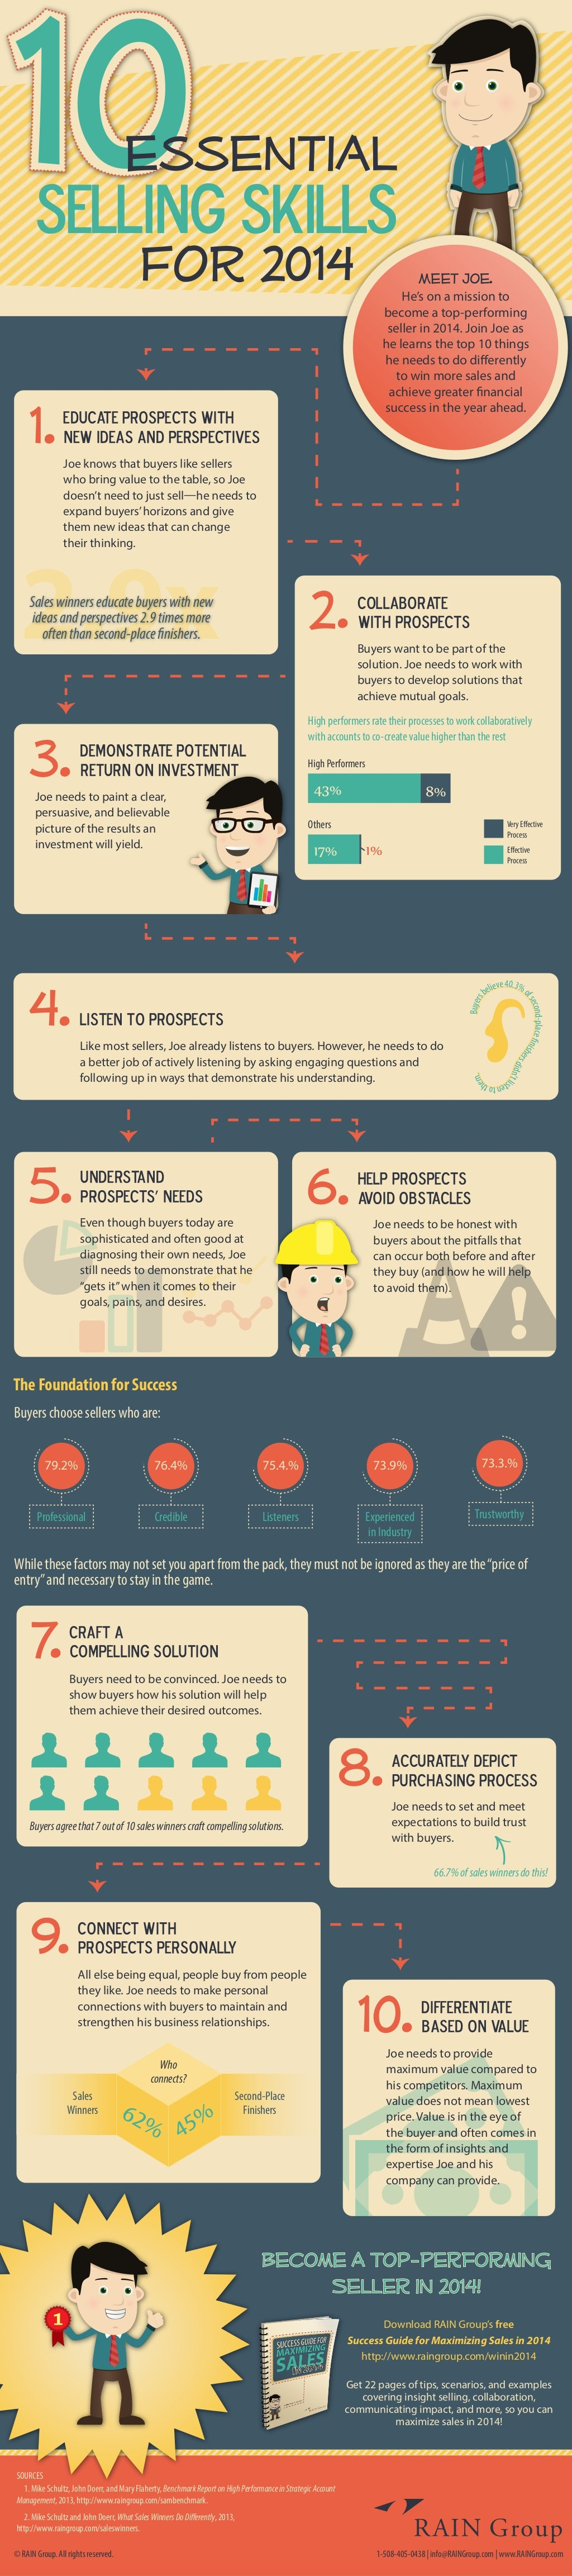 10 Essential Selling Skills for 2014